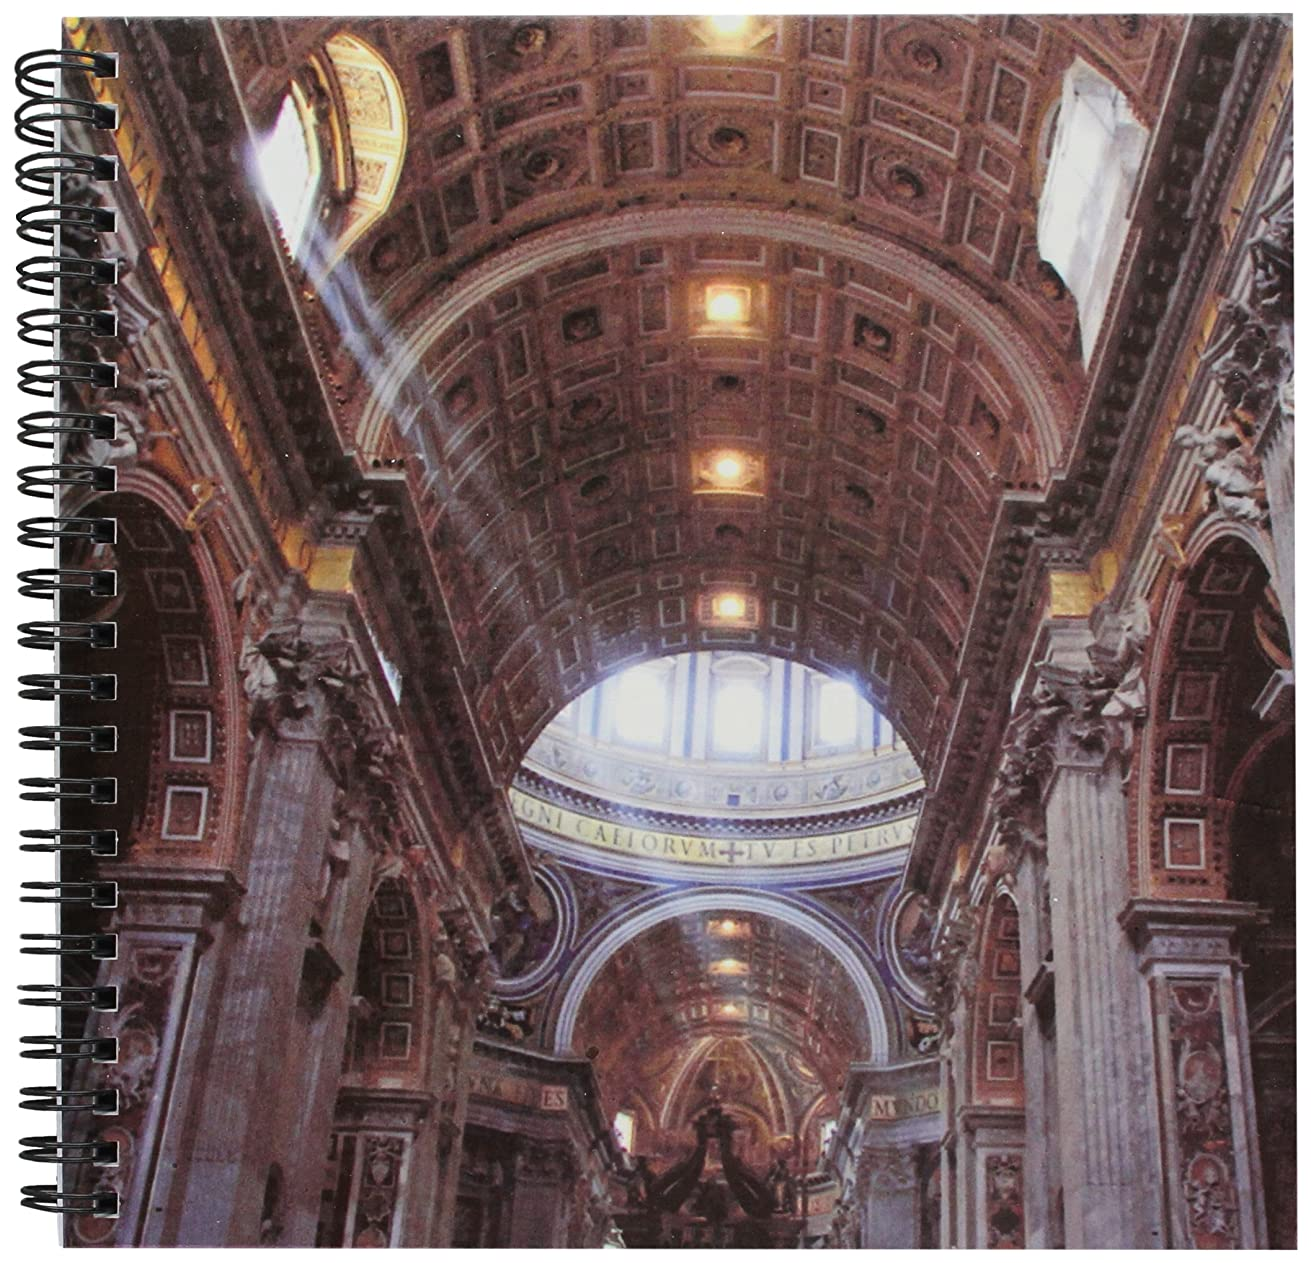 3dRose db_82097_1 Italy, Rome. St Peters Basilica, Interior EU16 CMI0562 Cindy Miller Hopkins Drawing Book, 8 by 8-Inch